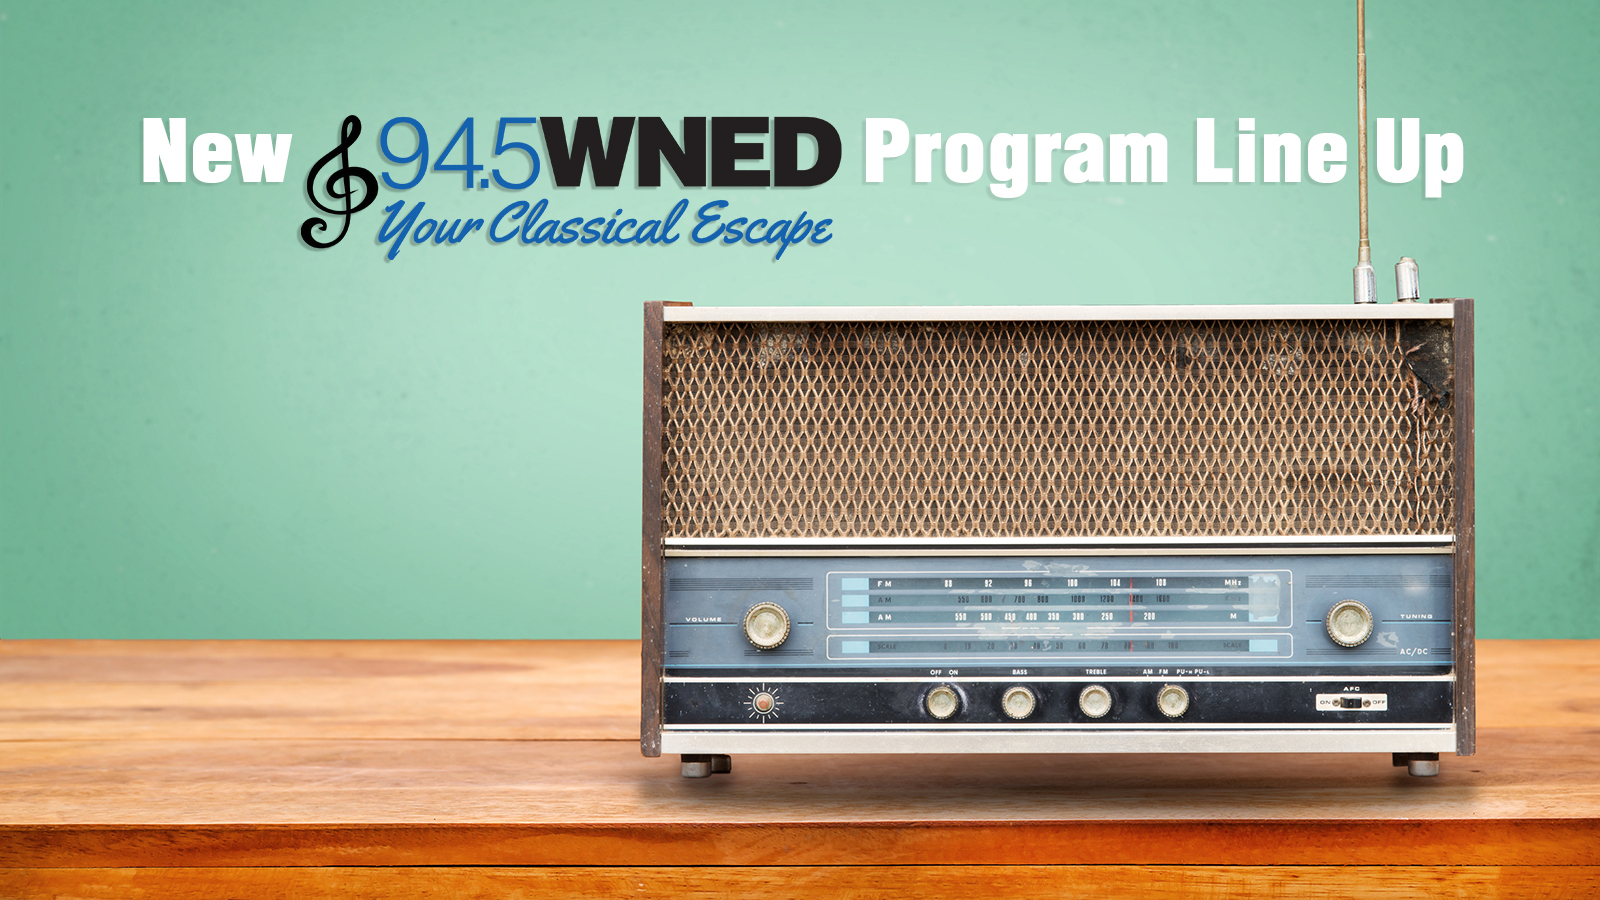 <strong>New Classical 94.5 WNED Program Line Up!</strong>